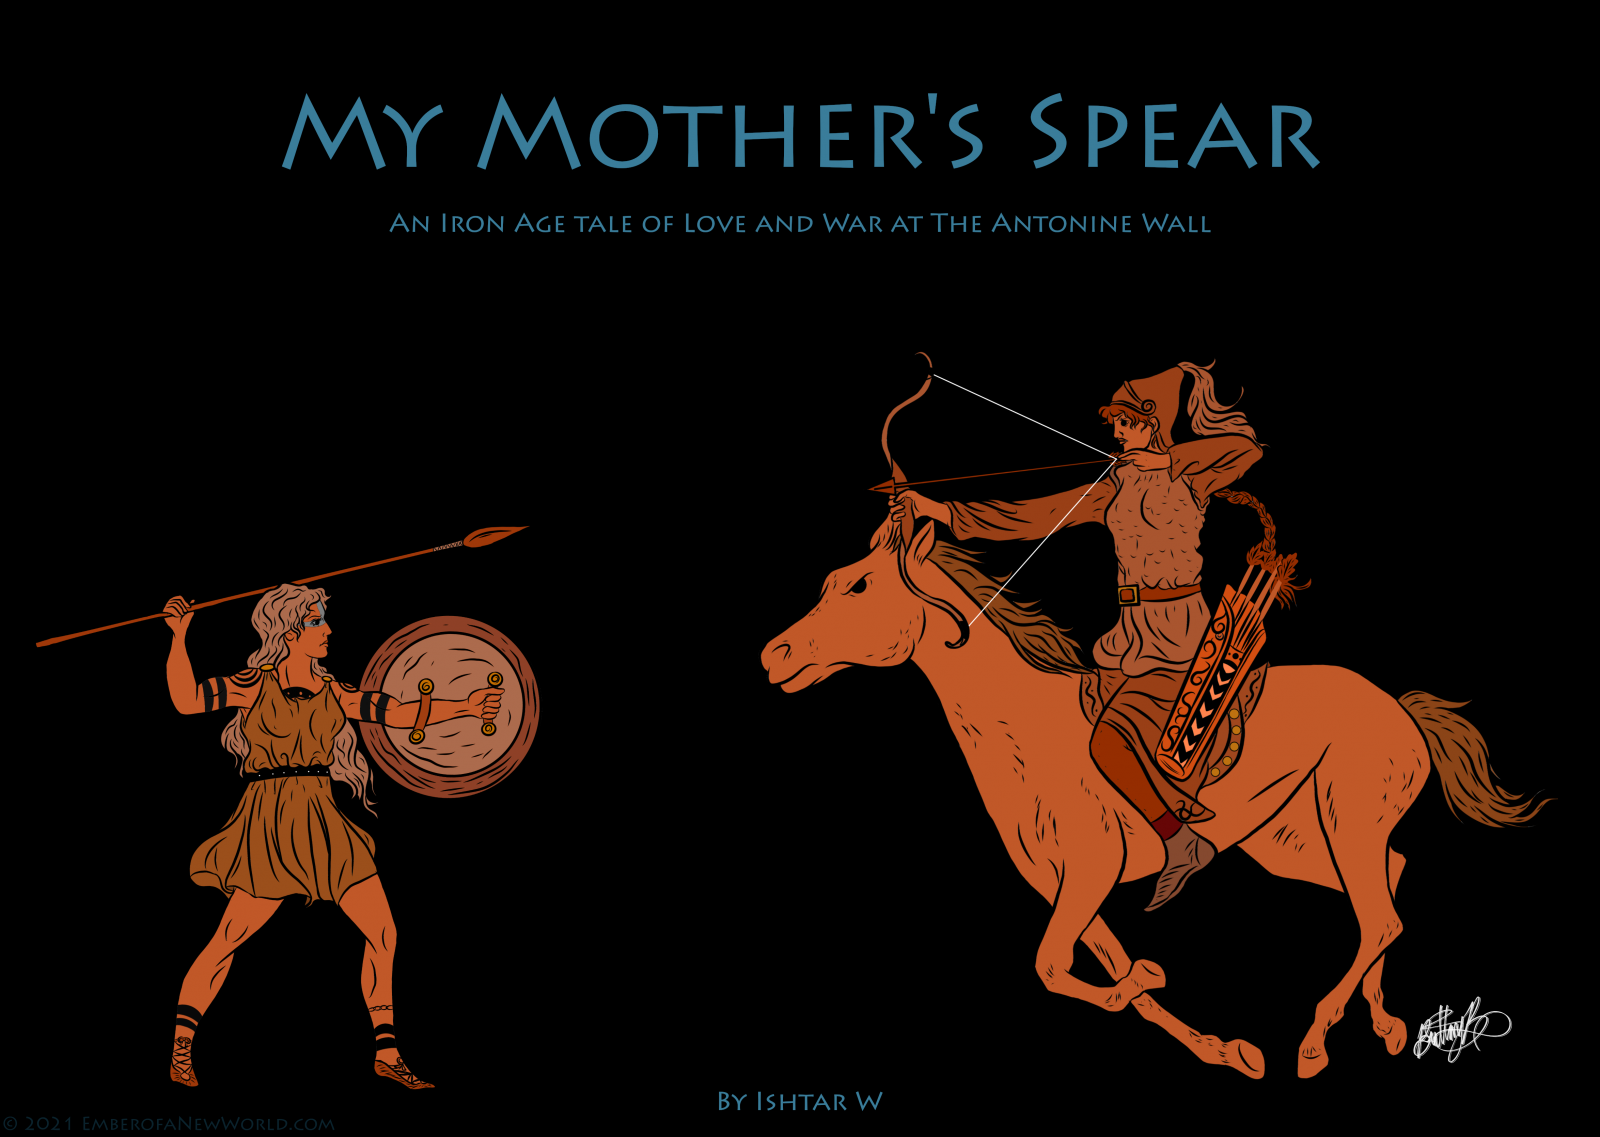 A Pictish warrior woman with a spear and shield faces off against a mounted, heavily armed, and armored Sarmatian woman with a bow.